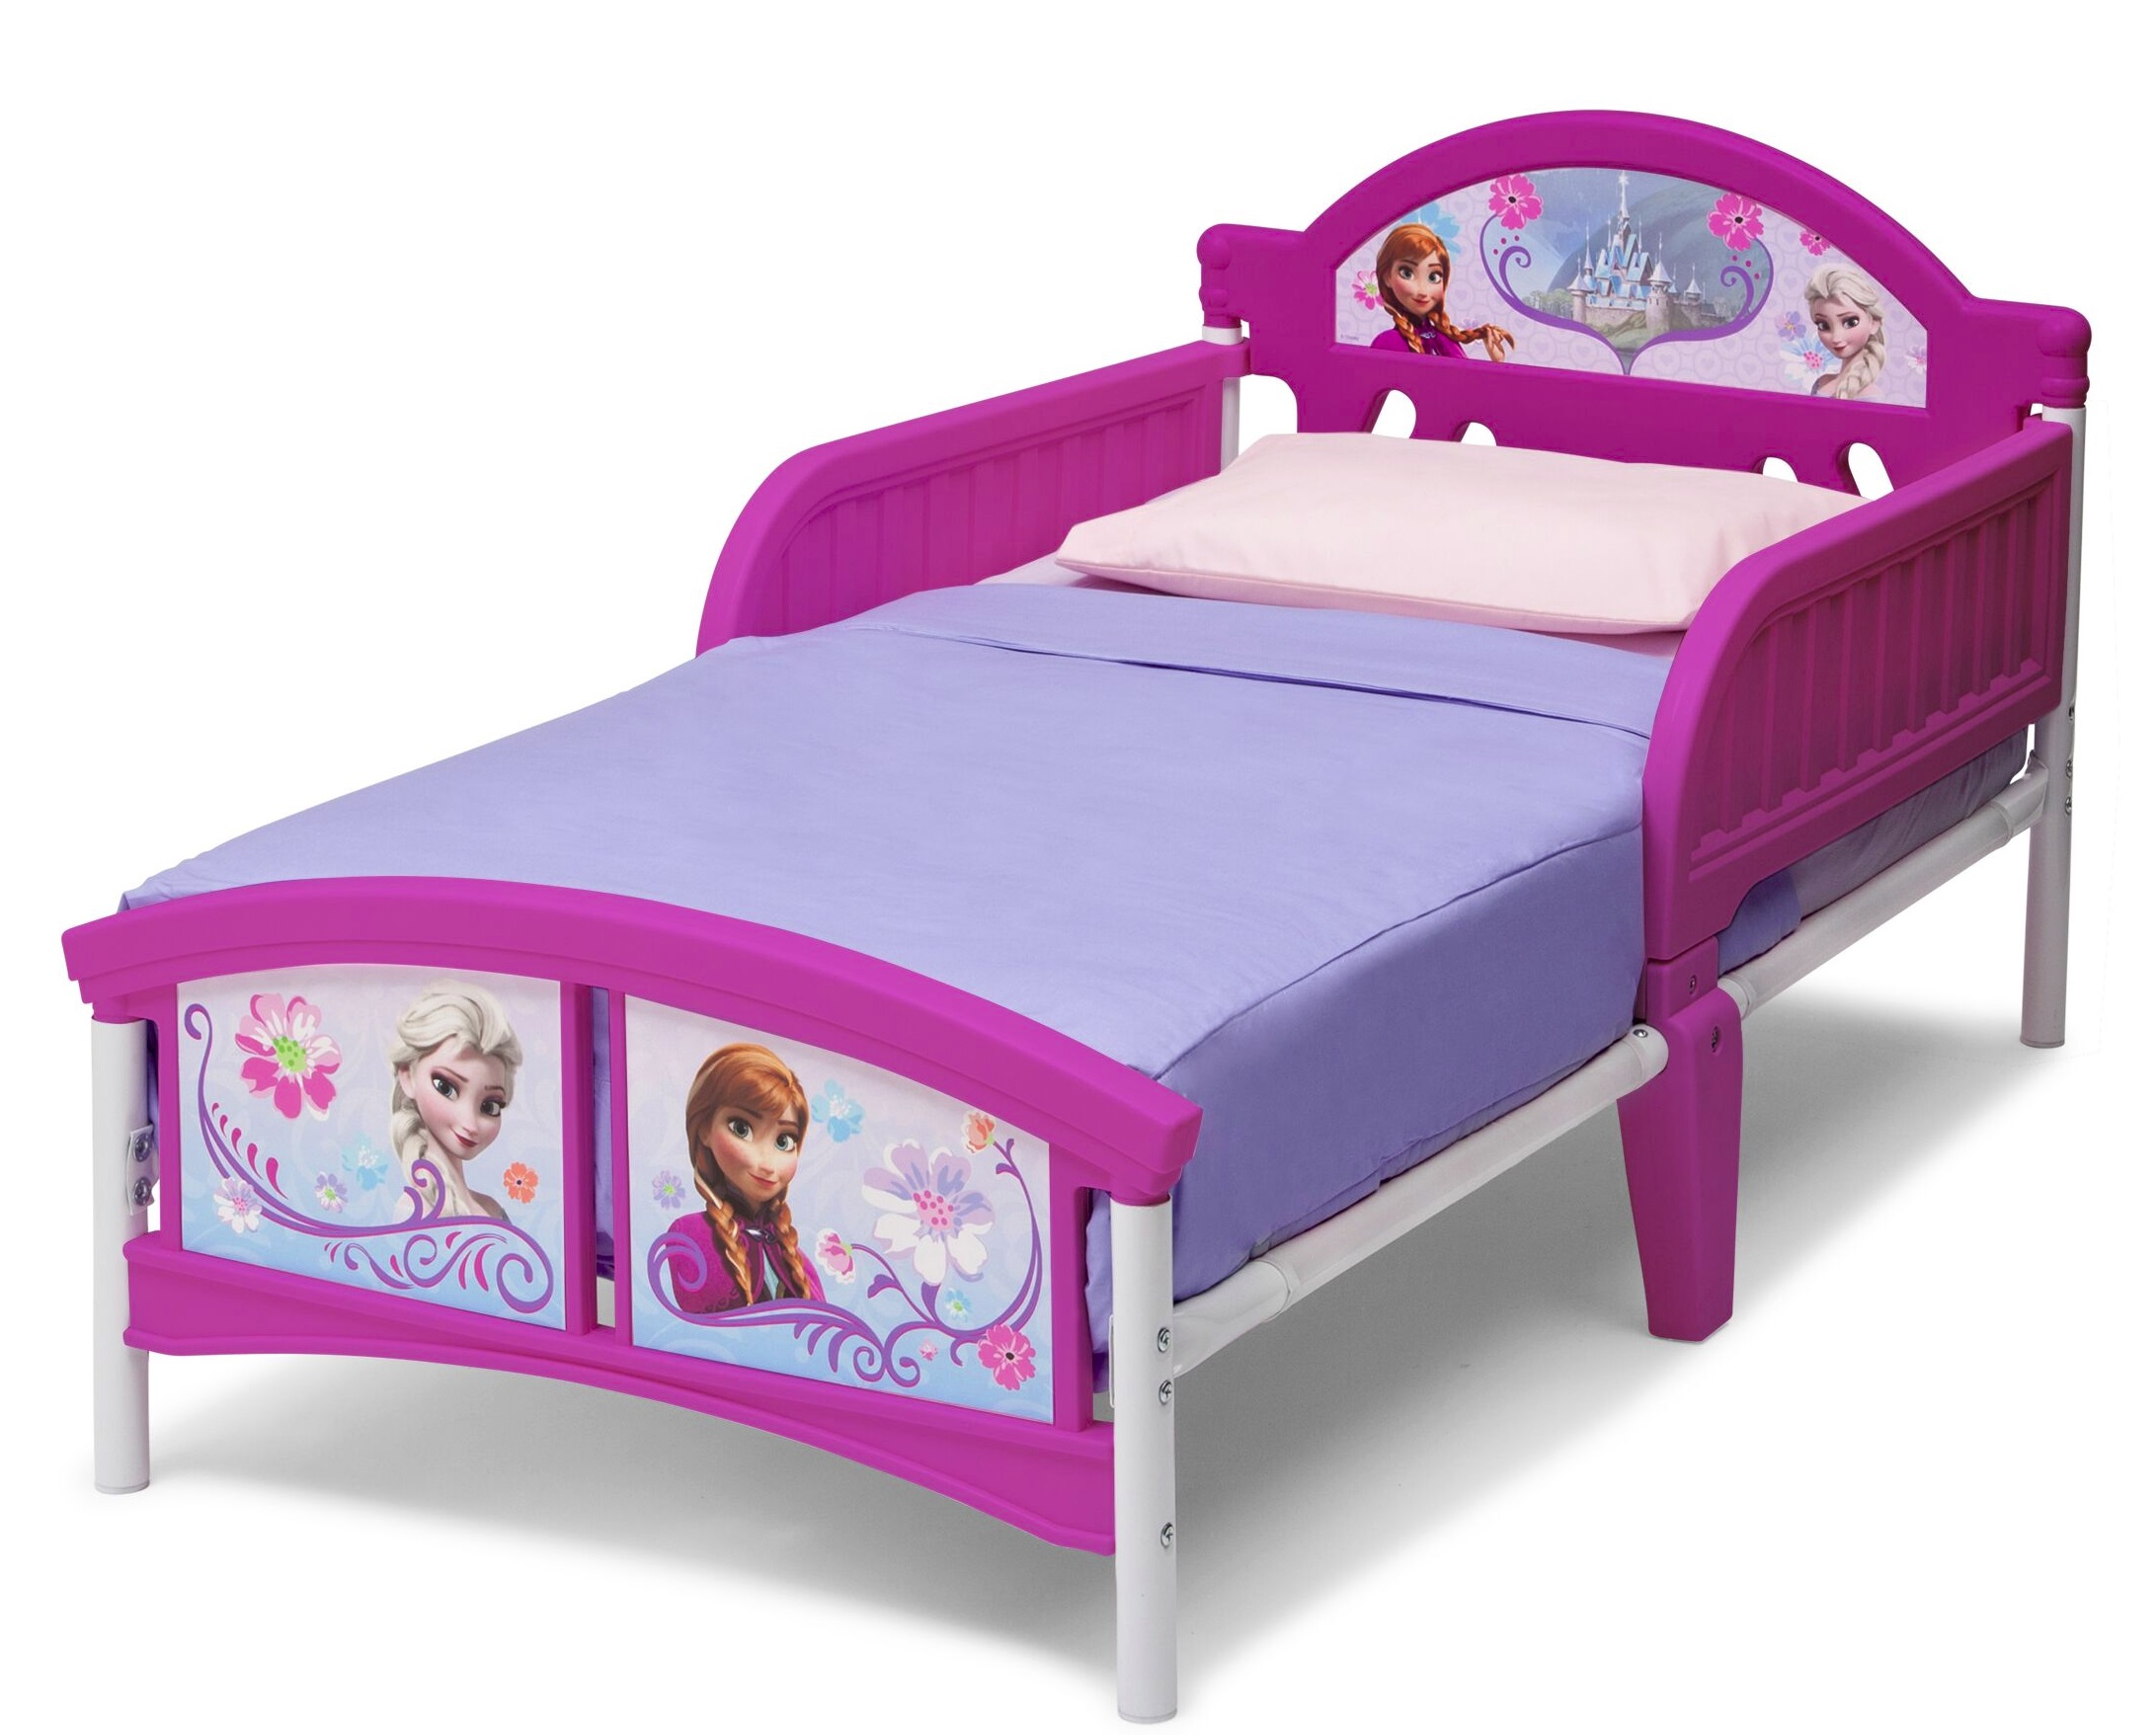 kinderbett disney frozen 70x140 cm rausfallschutz jugendbett kinderbett bett ebay. Black Bedroom Furniture Sets. Home Design Ideas